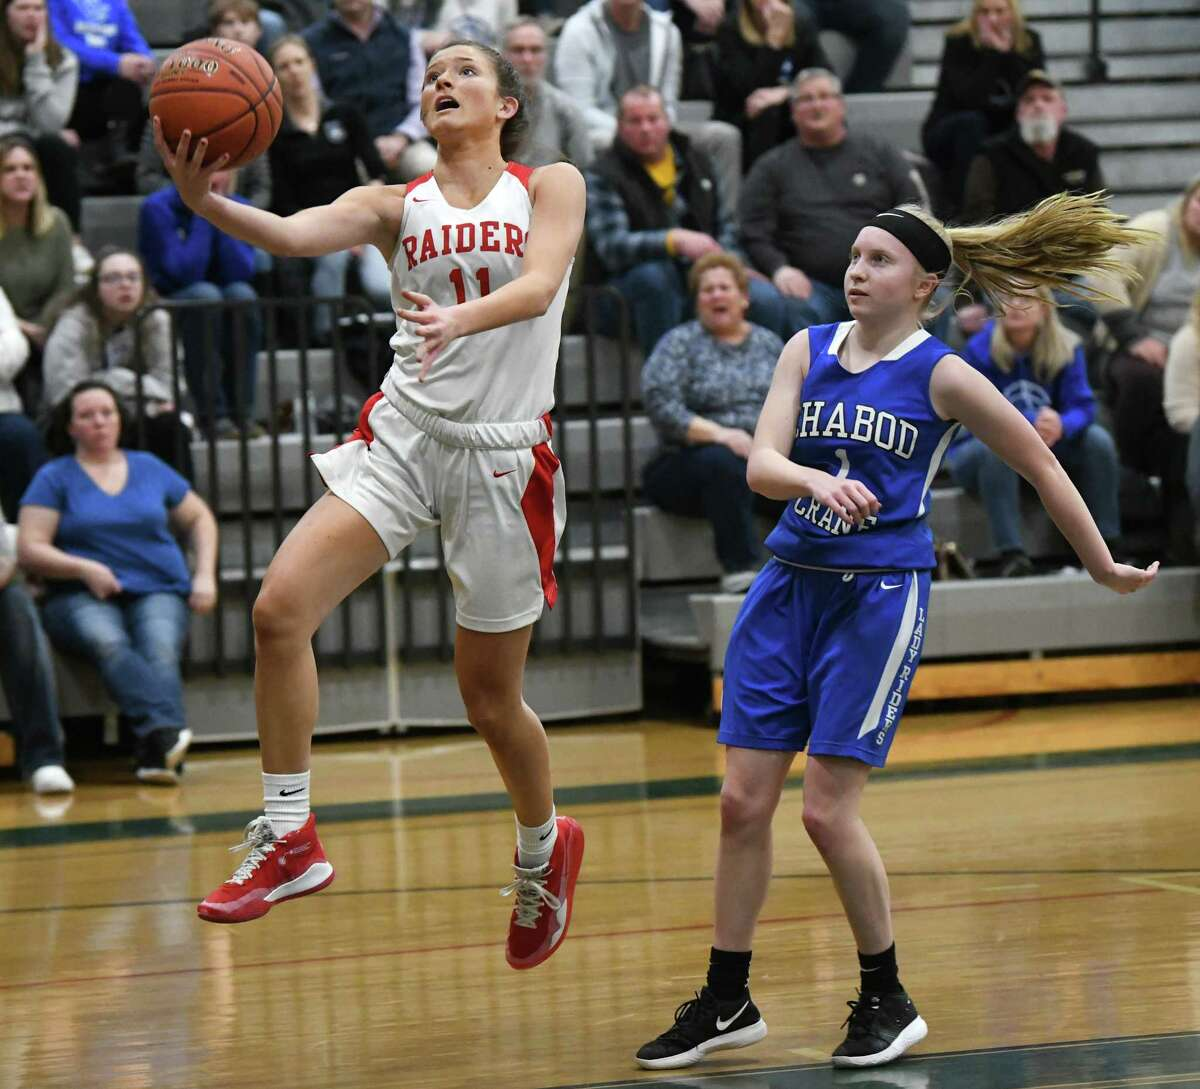 Mechanicville's Charli Goverski makes a layup during a game against Ichabod Crane on Wednesday, Feb. 26, 2020 in Rotterdam, N.Y. (Lori Van Buren/Times Union)